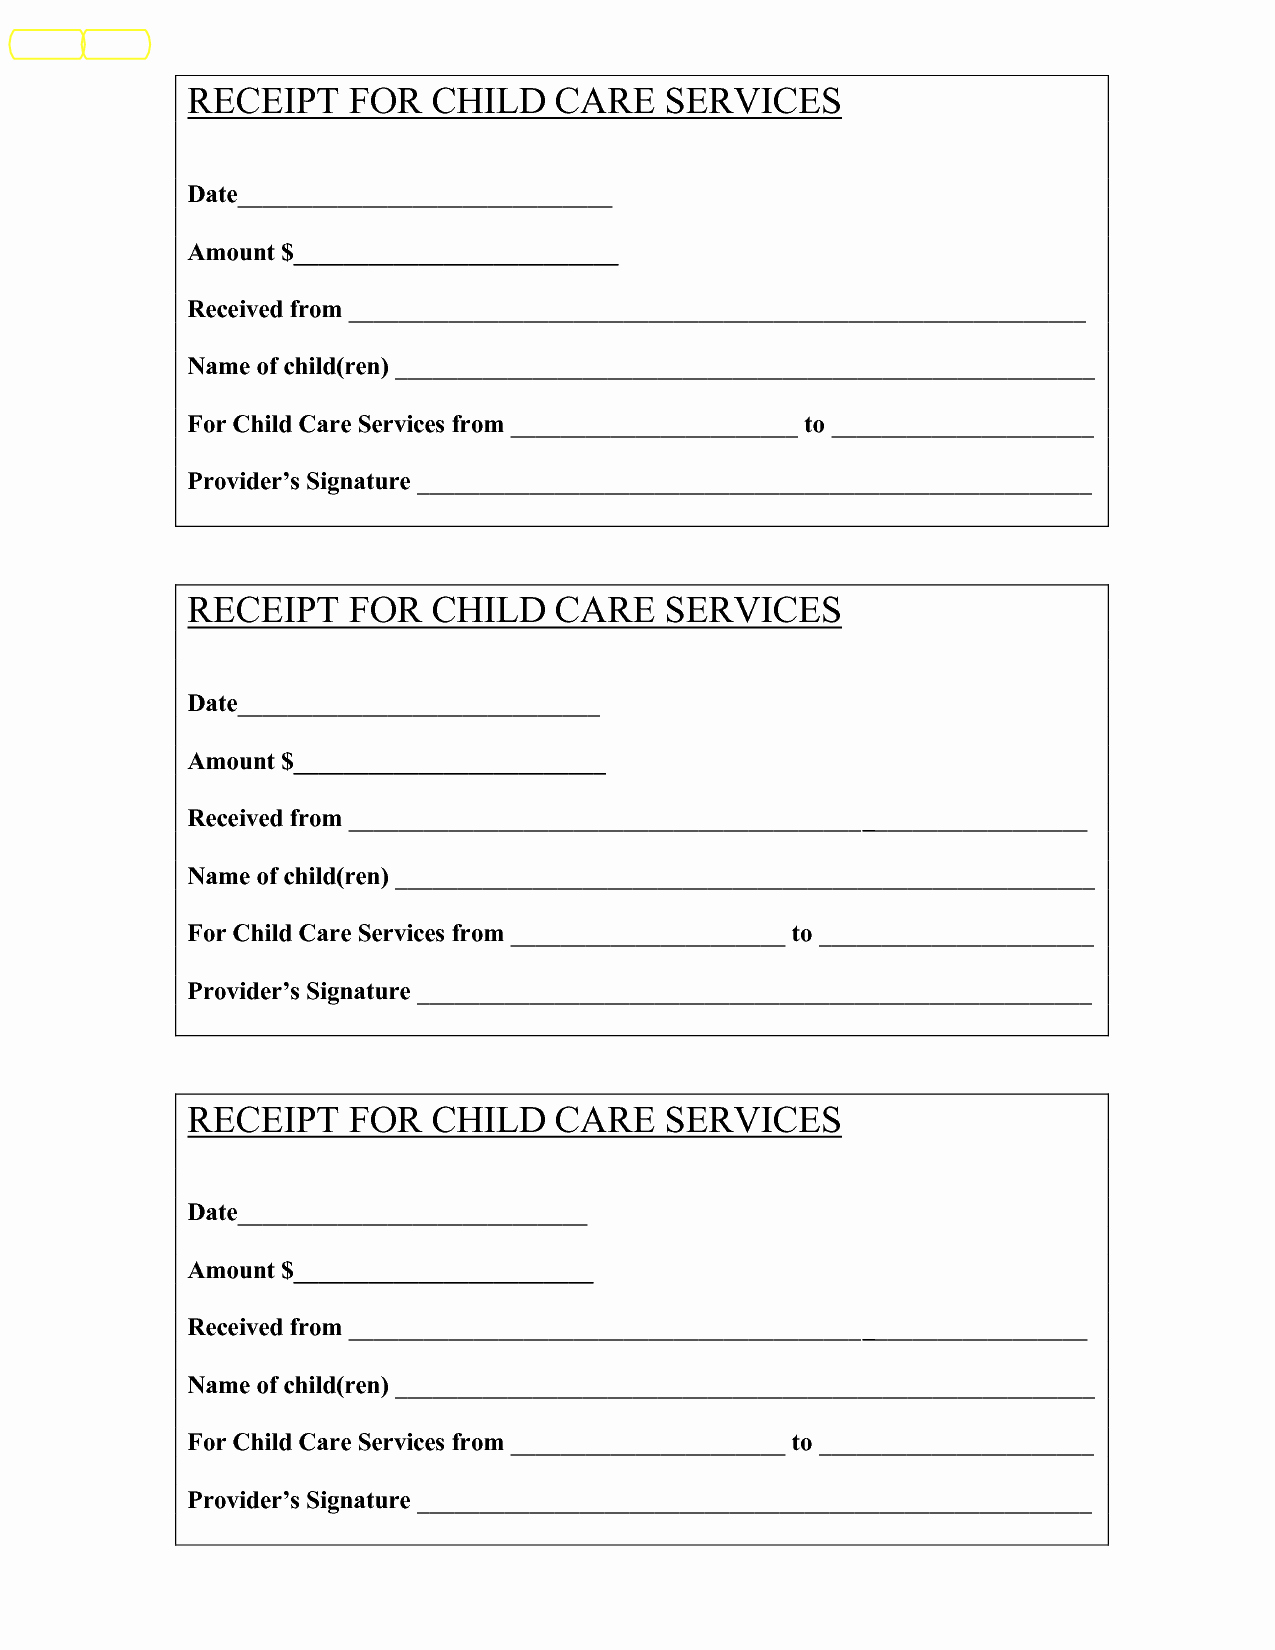 Child Care Receipt Template Elegant Babysitting Receipt Bing Baby Pinterest